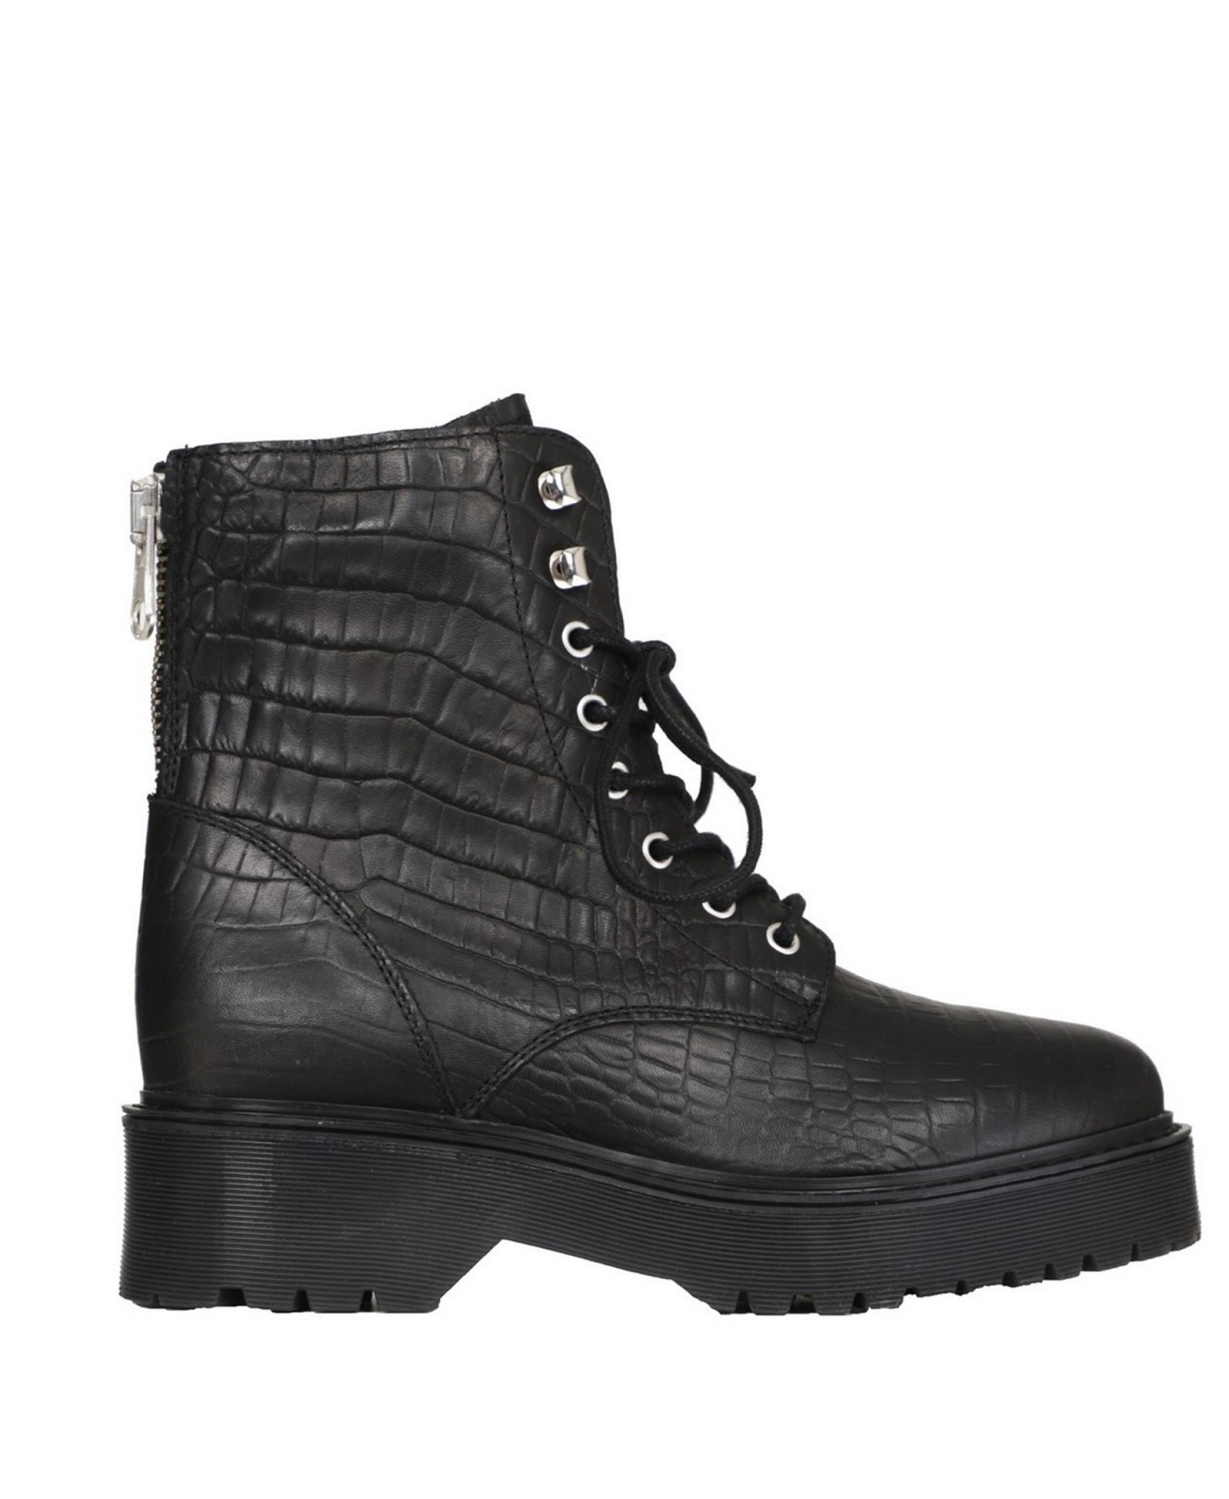 PS Poelman Veterboot Zwart 5648